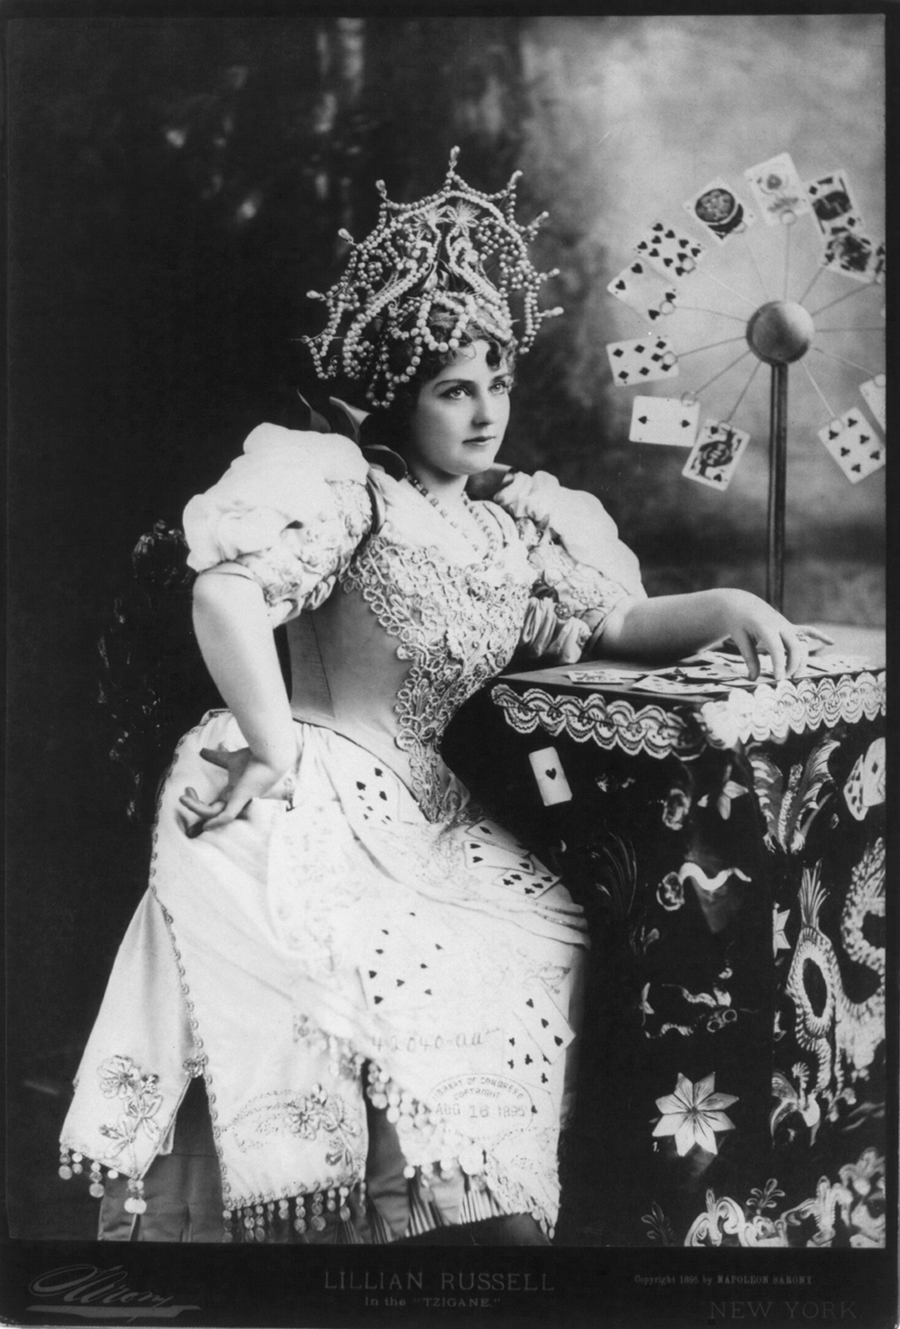 pictures Lillian Russell